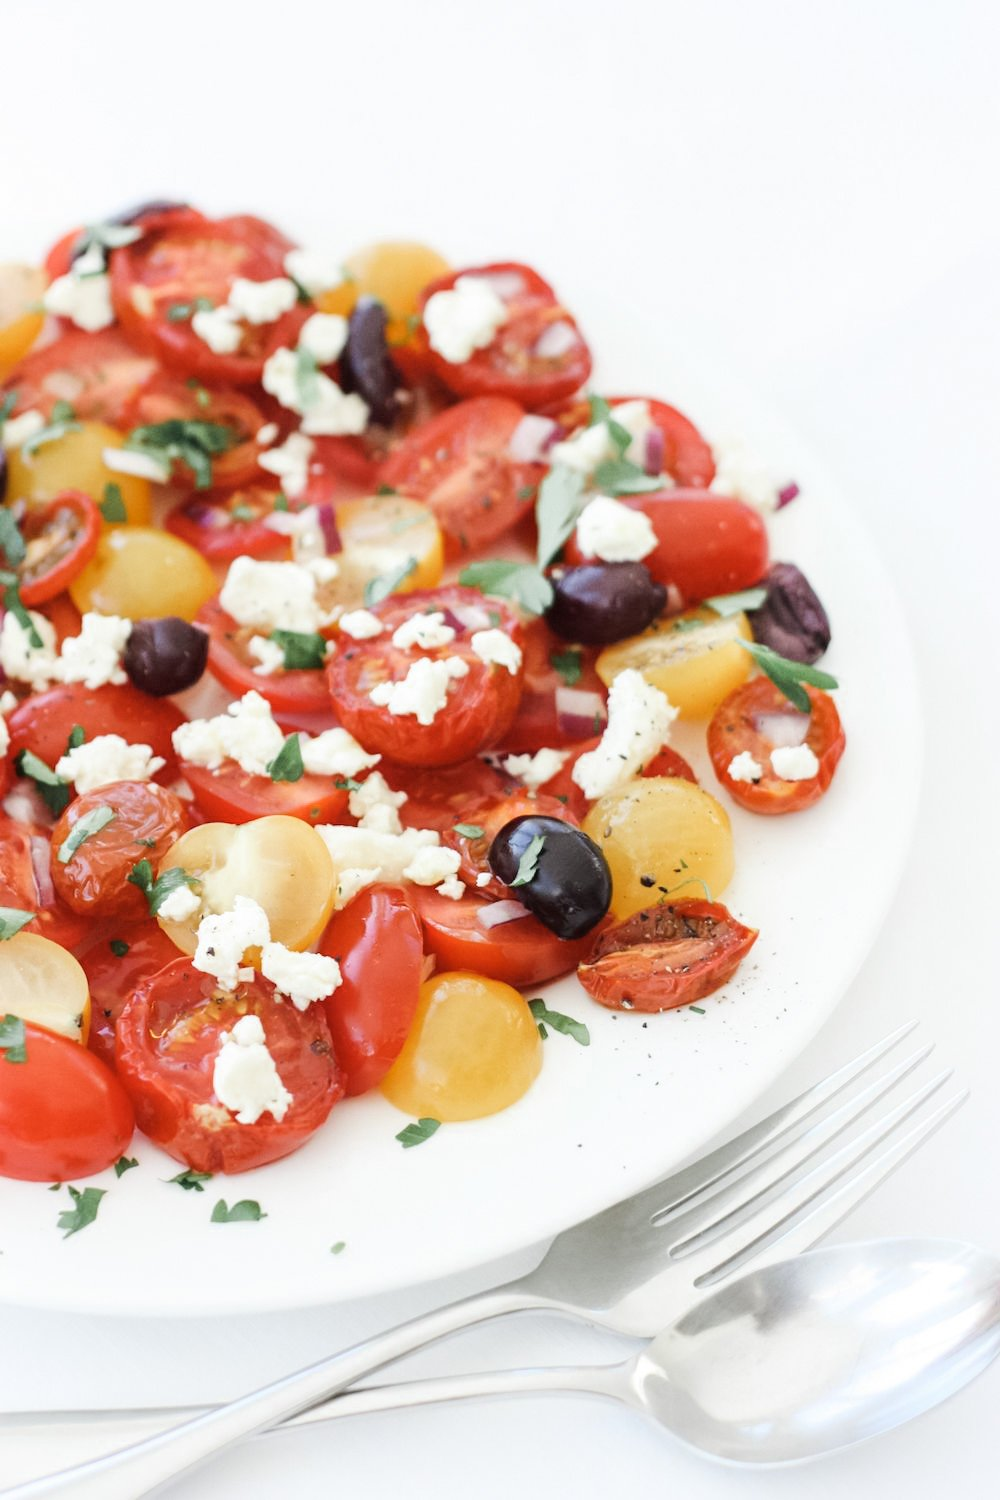 Roasted Tomato Salad served on a white plate